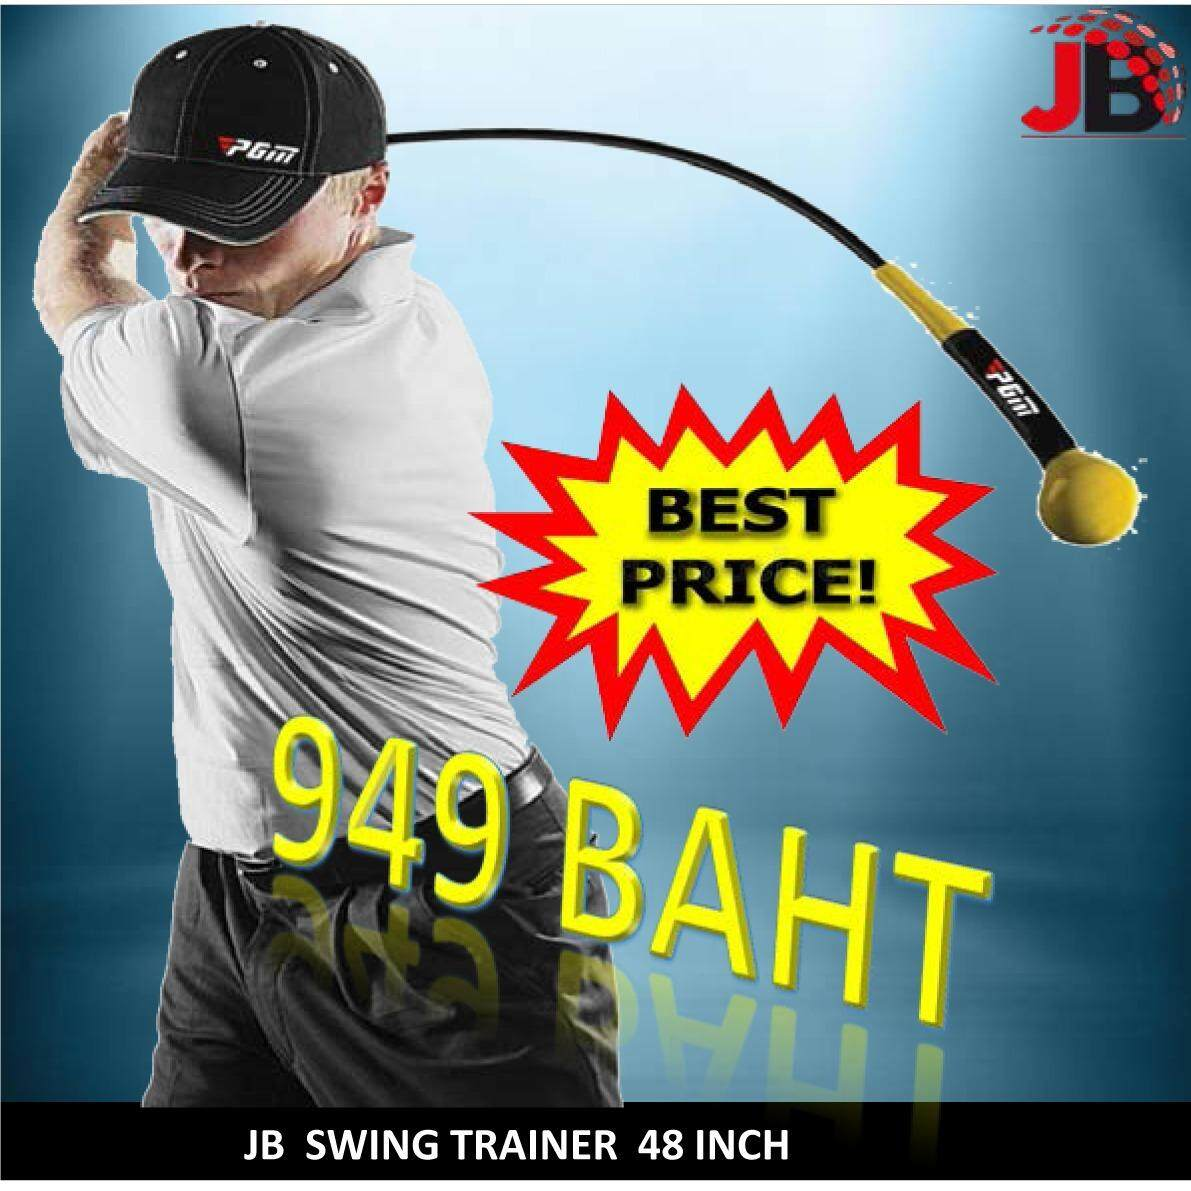 JB Swing Trainer 48 Inch  (For The Correct Swing And Build Up Your Muscle)